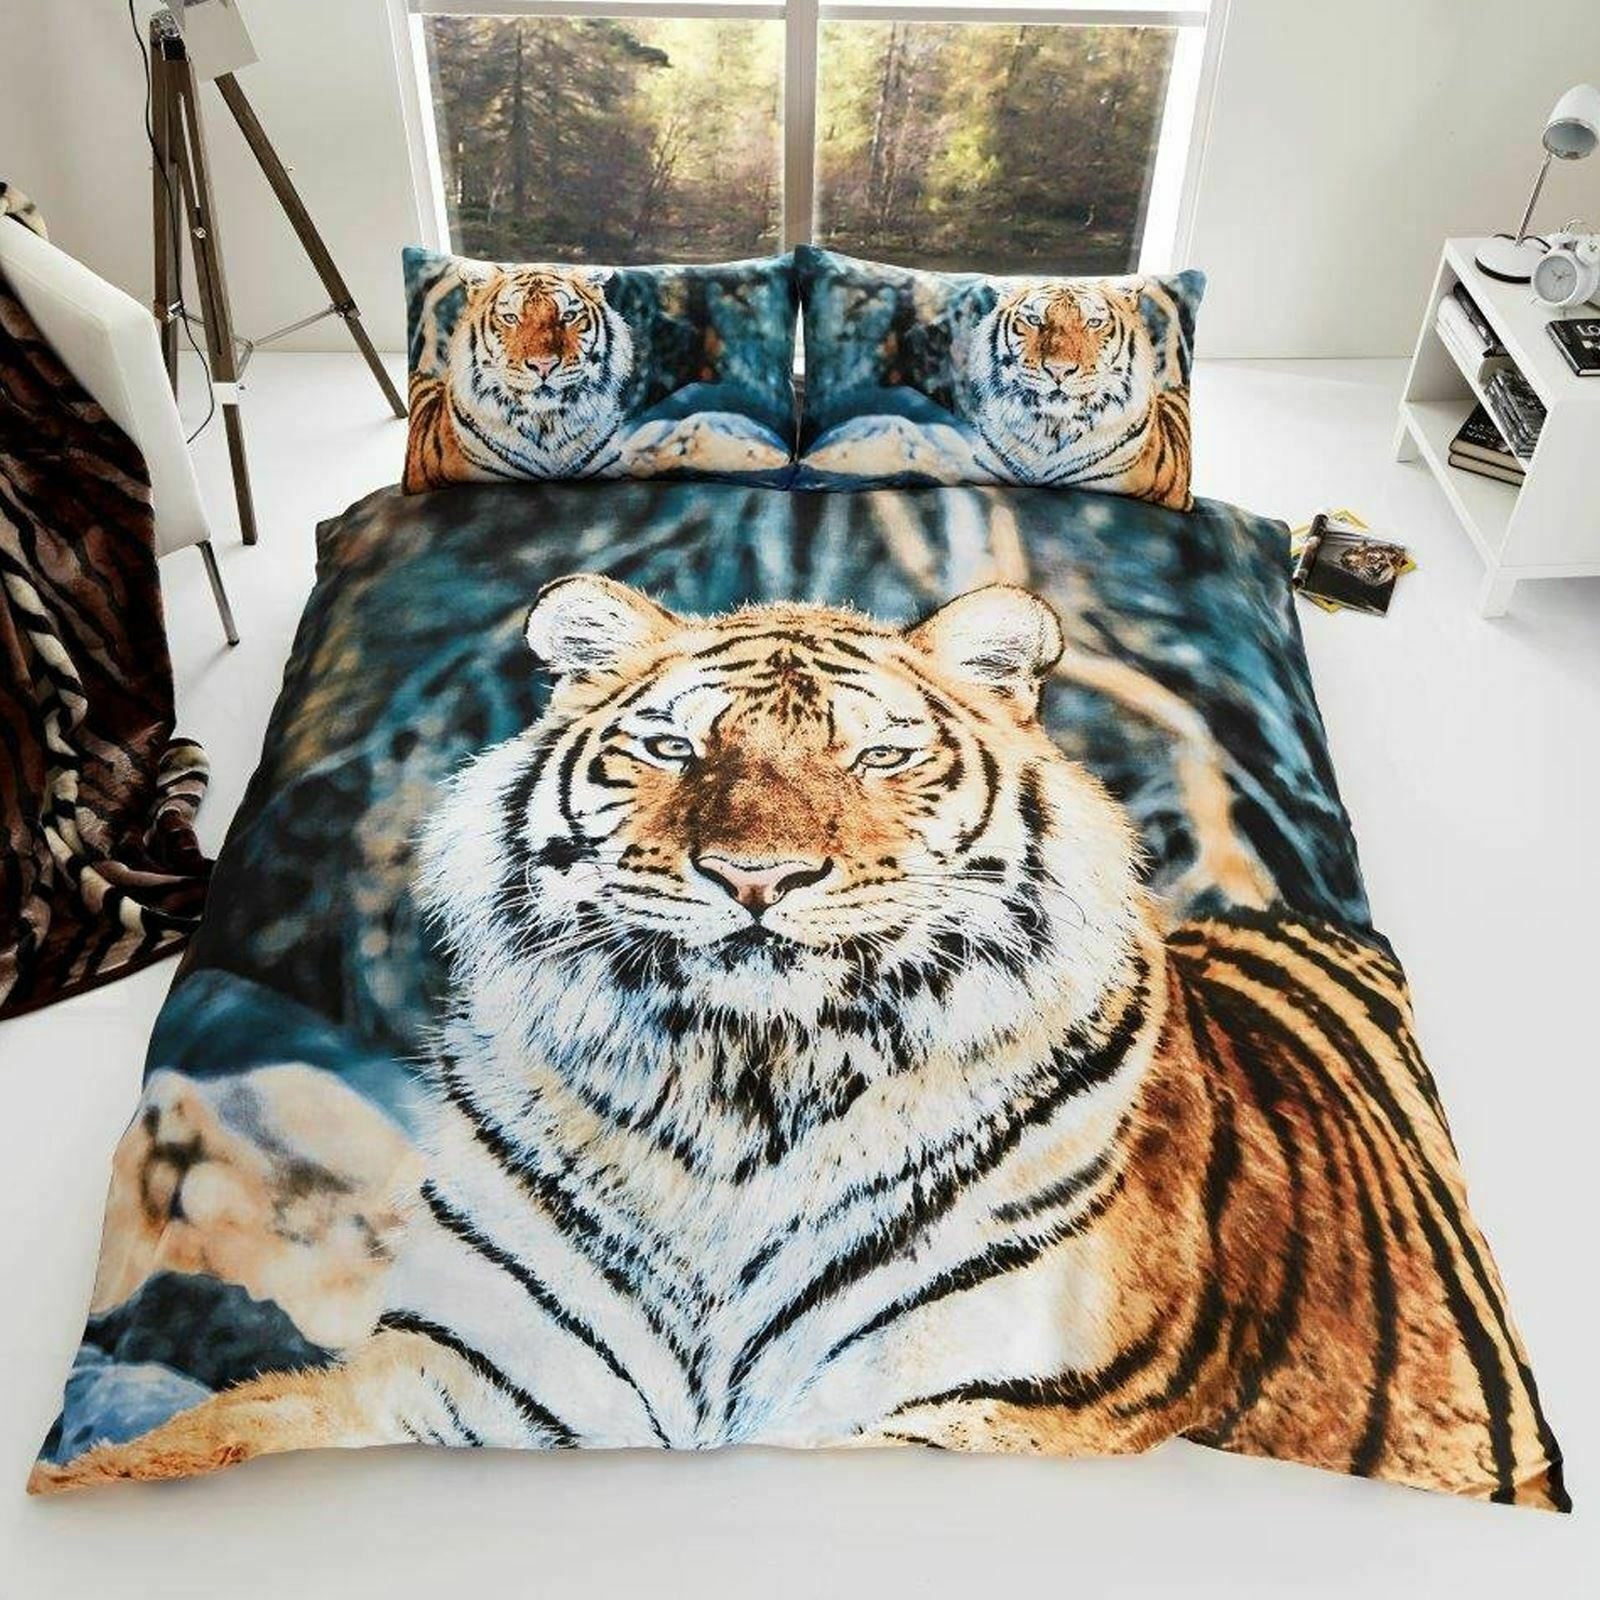 TIGER UK KING   US QUEEN UNFILLED DUVET COVER & PILLOWCASE SET - ANIMAL NEW